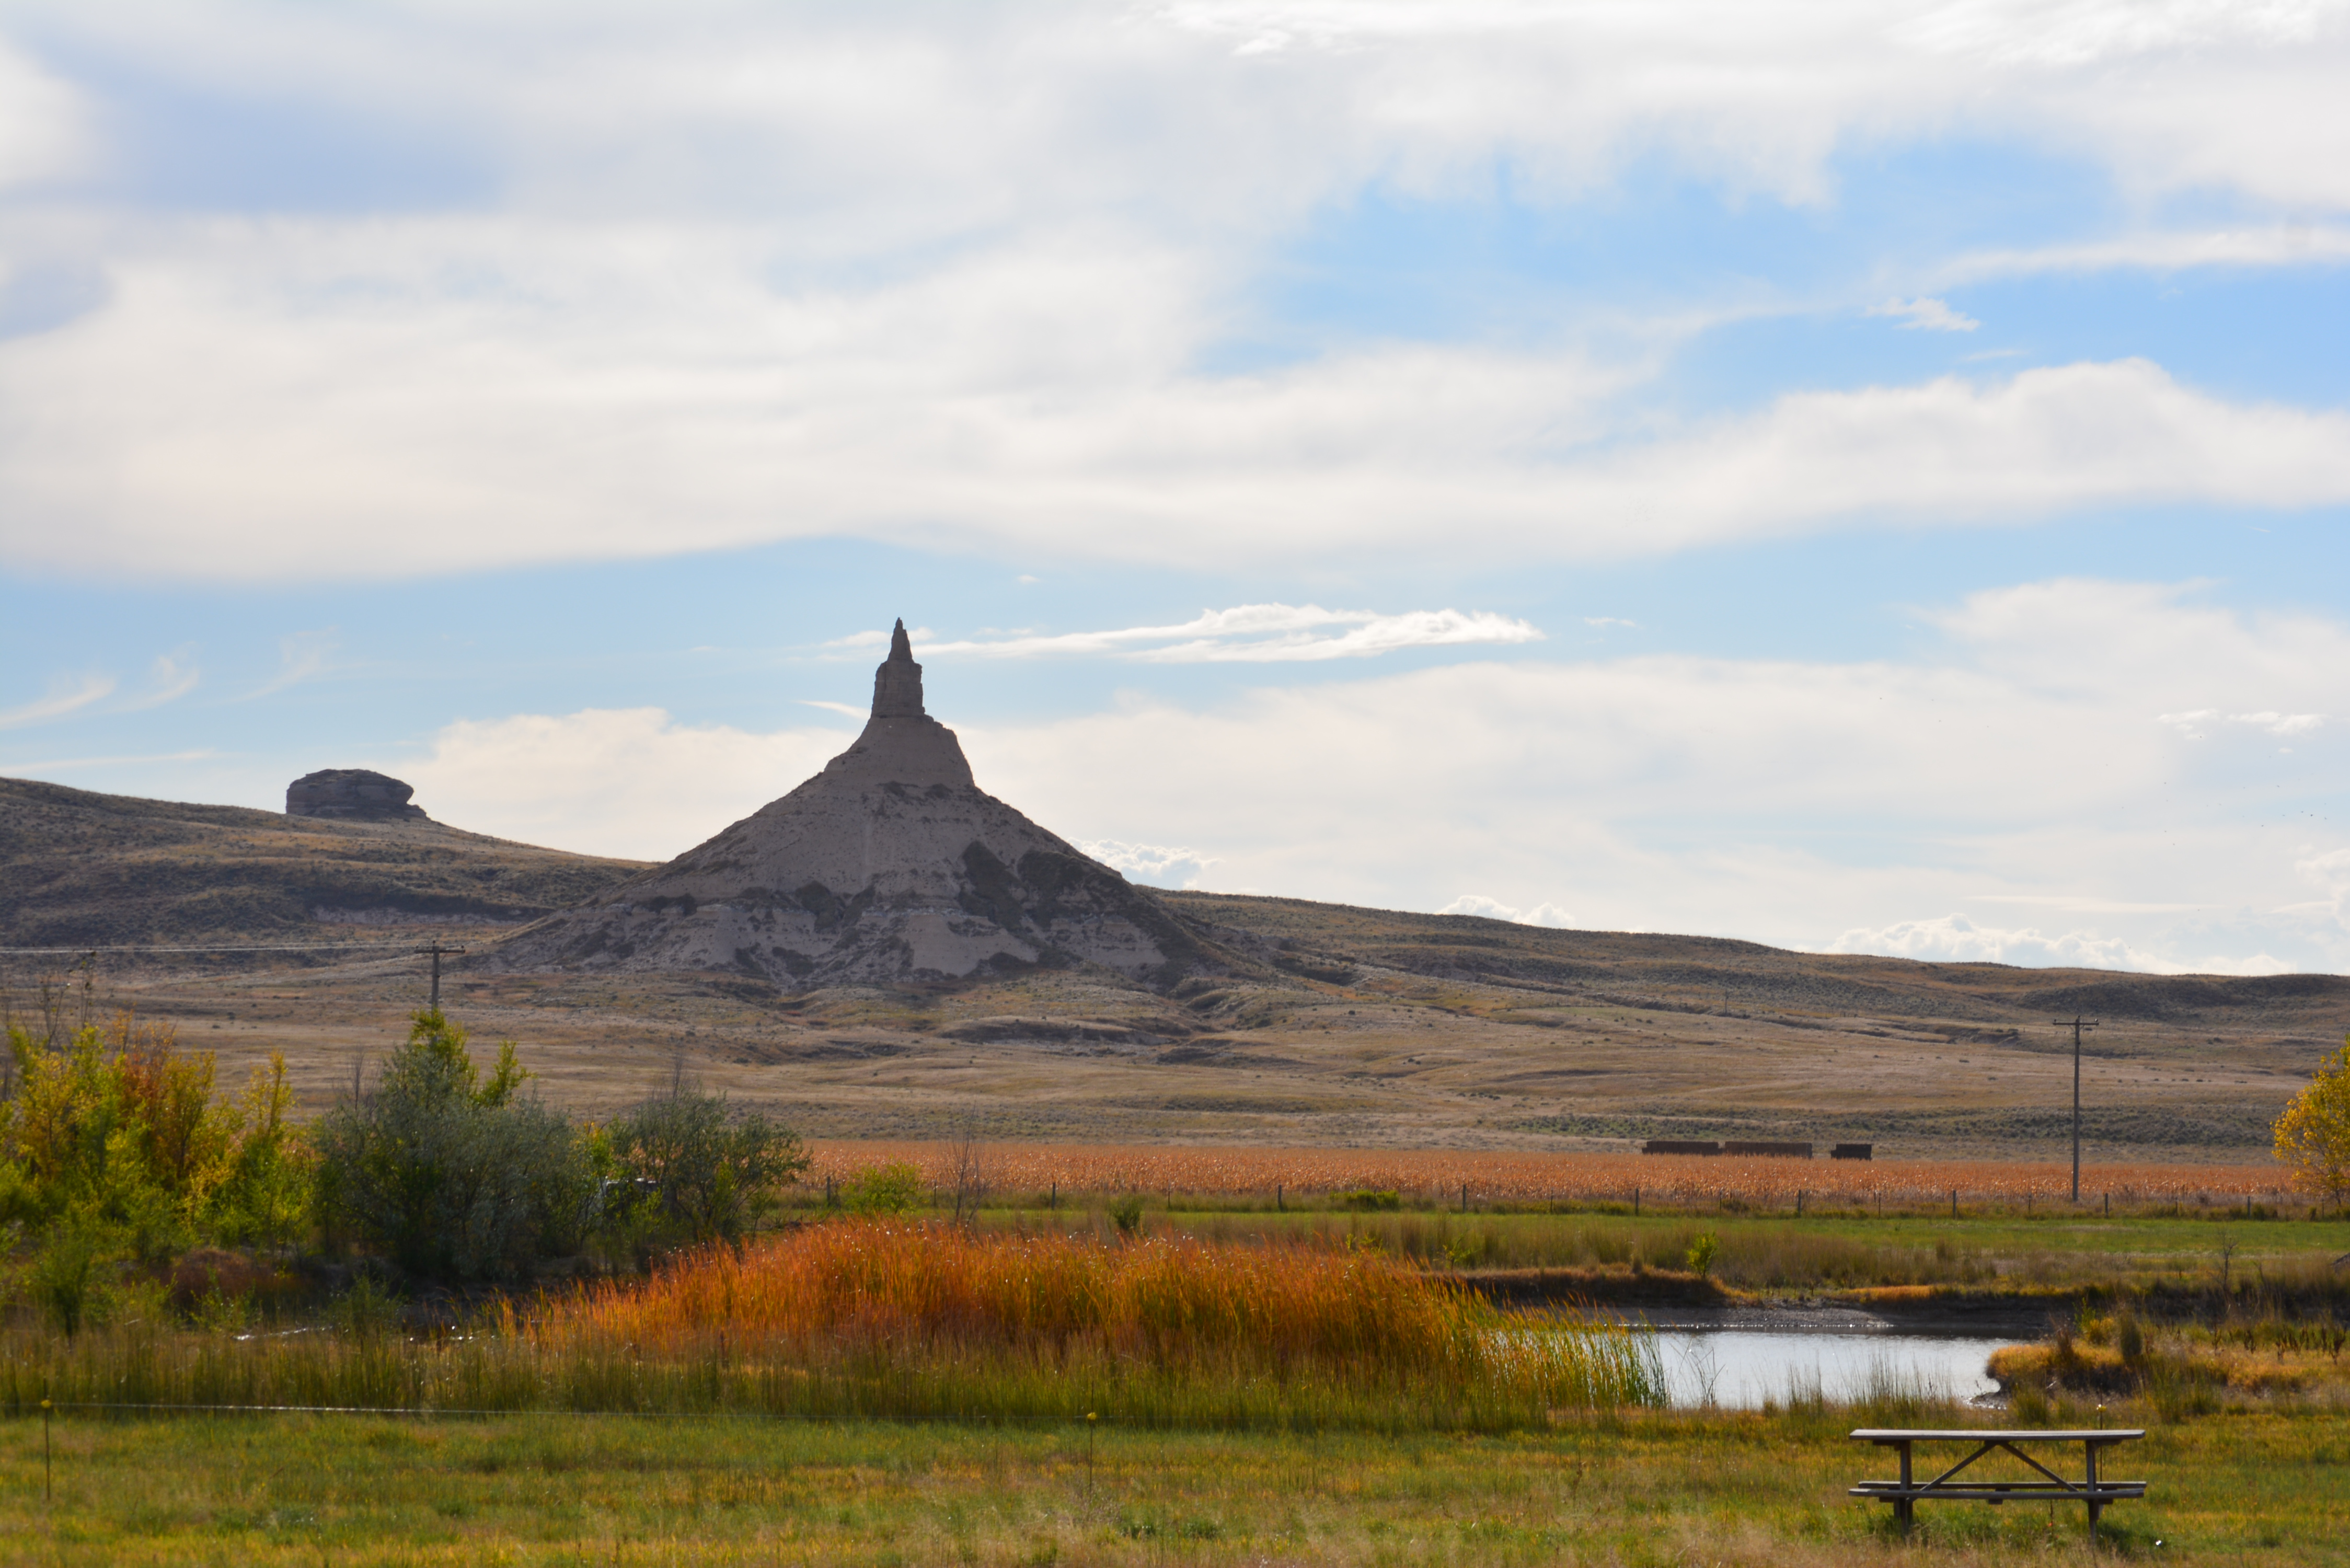 chimney rock single men Although the formation is comprised of two stone spires, chimney rock implies a single spire, possibly because only one spire is visible when viewed directly from the east or west.